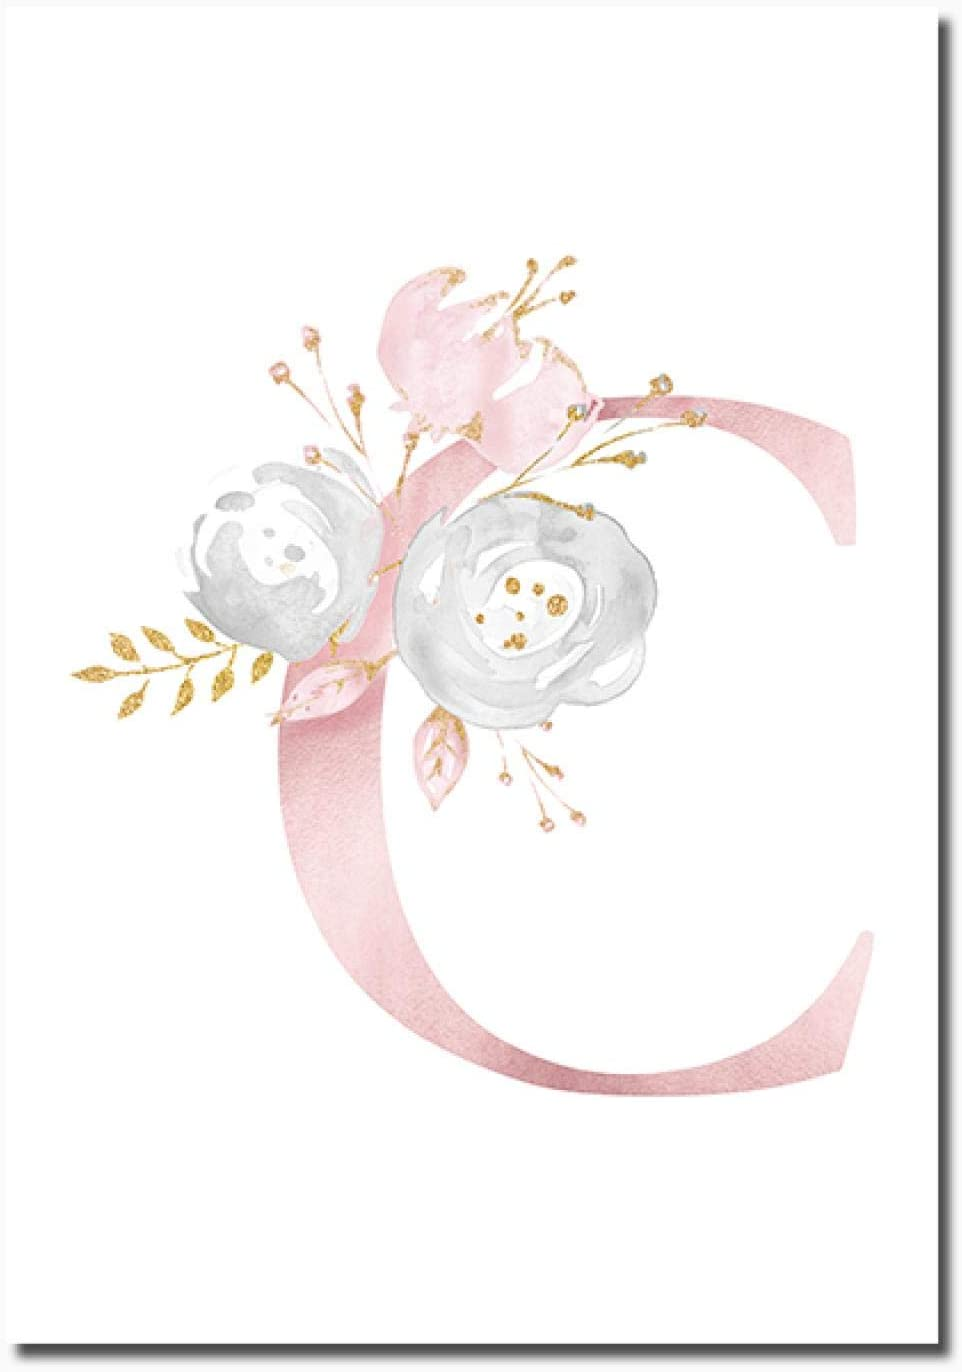 Rumlly Nursery Wall Art Prints Pink Flowers Letters C Canvas Poster Print Modern Painting Wall Pictures Nordic Girl Kids Bedroom Decor-40x60cm No Frame